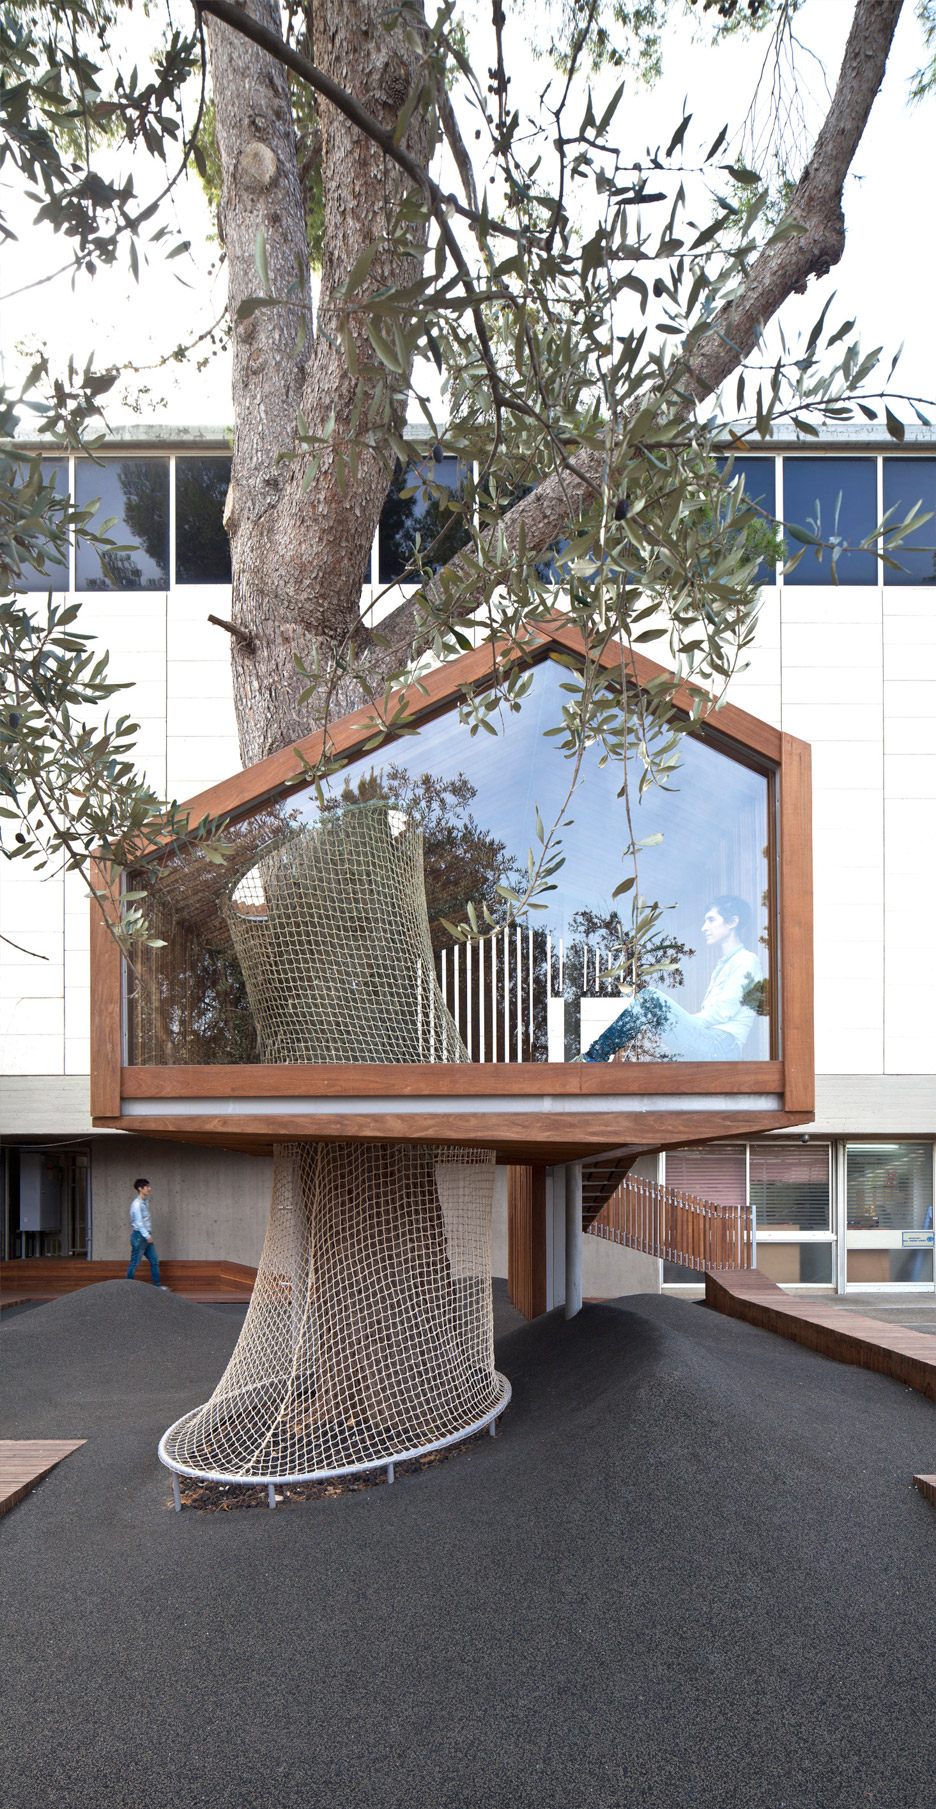 IMJ tree house by Ifat Finkelman and Deborah Warschawski